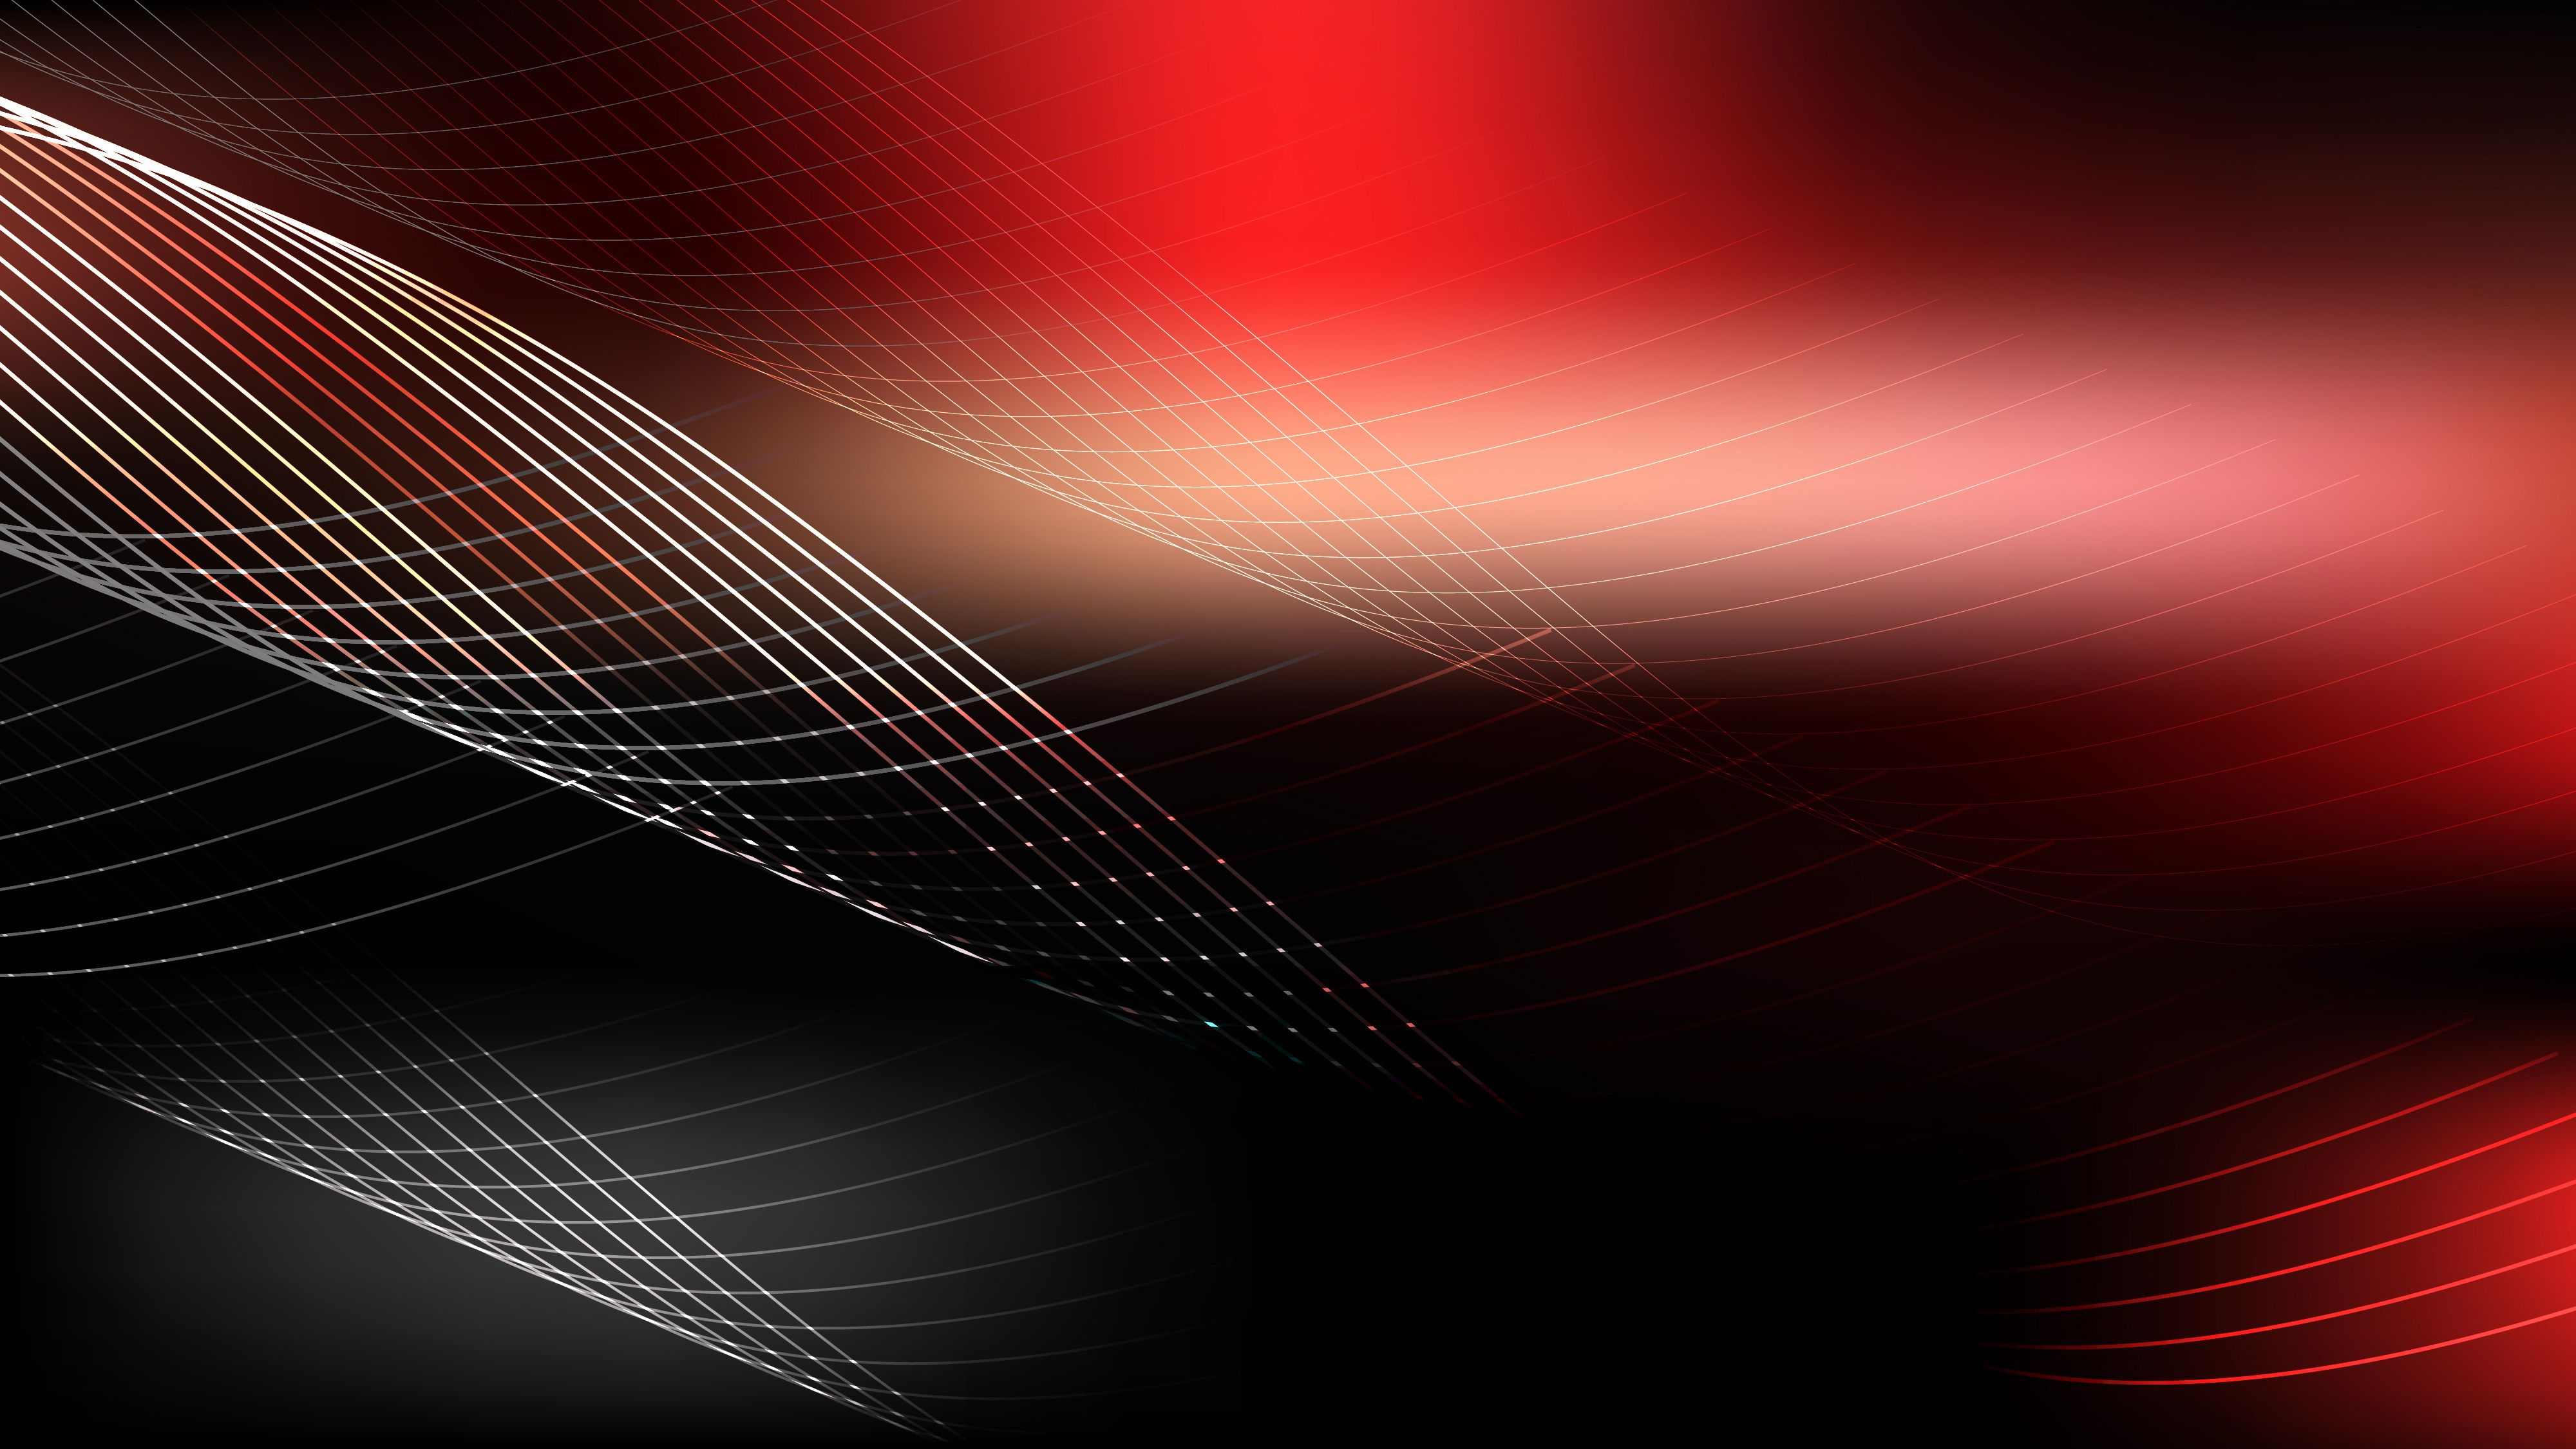 Red Black Line Free Background Image Design Graphicdesign Creative Wallpaper Backgro Free Background Images Background Images Black Background Images